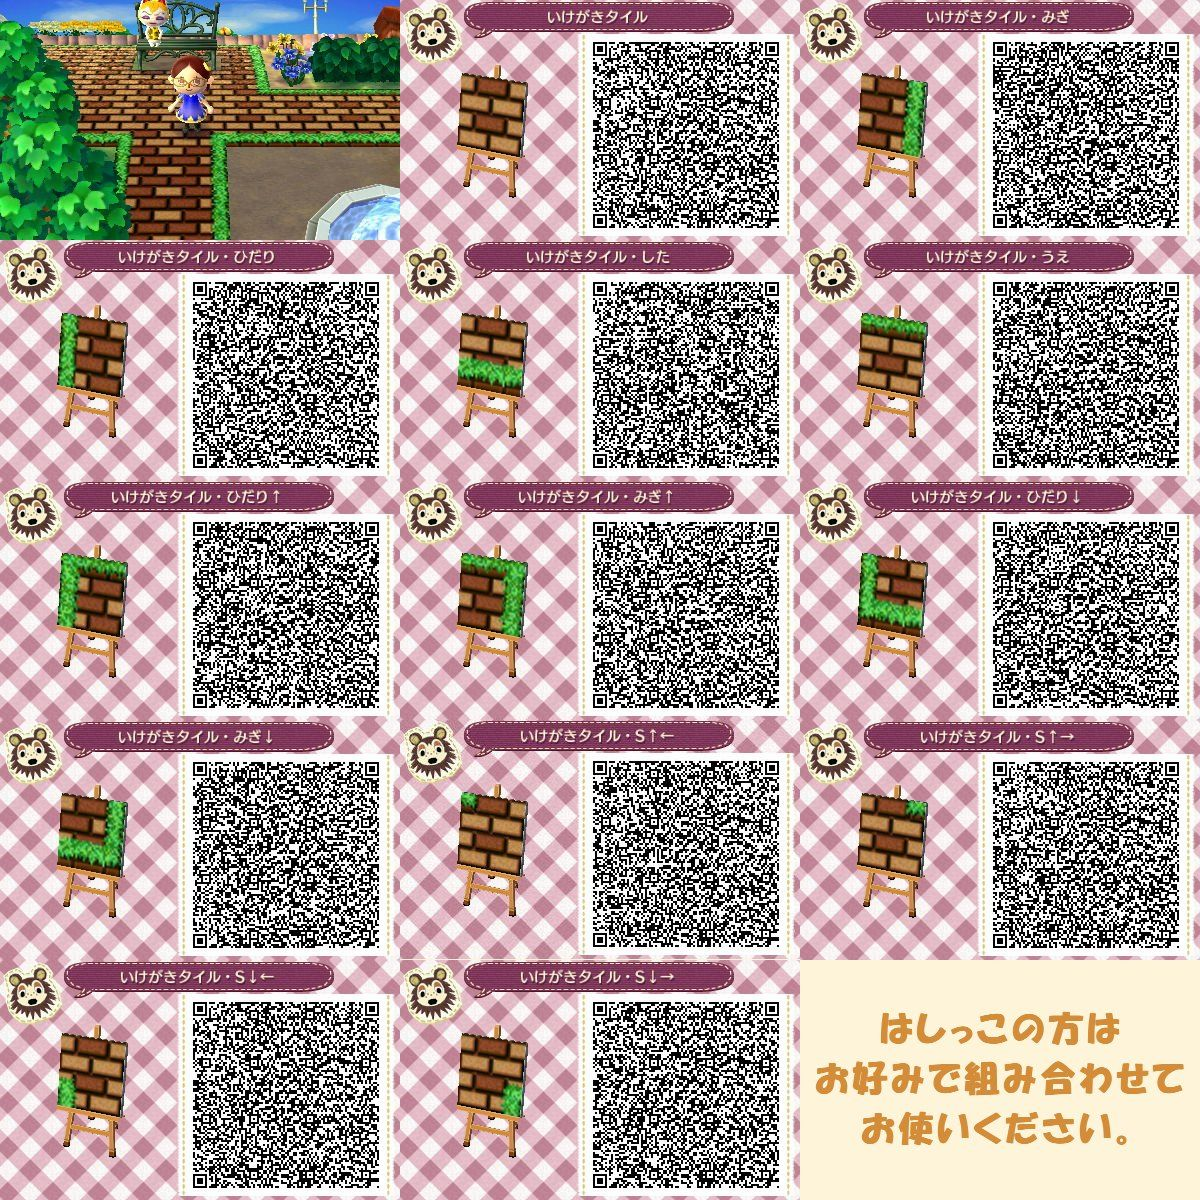 Animal crossing new leaf path qr code outfits qr codes for Floor qr codes new leaf